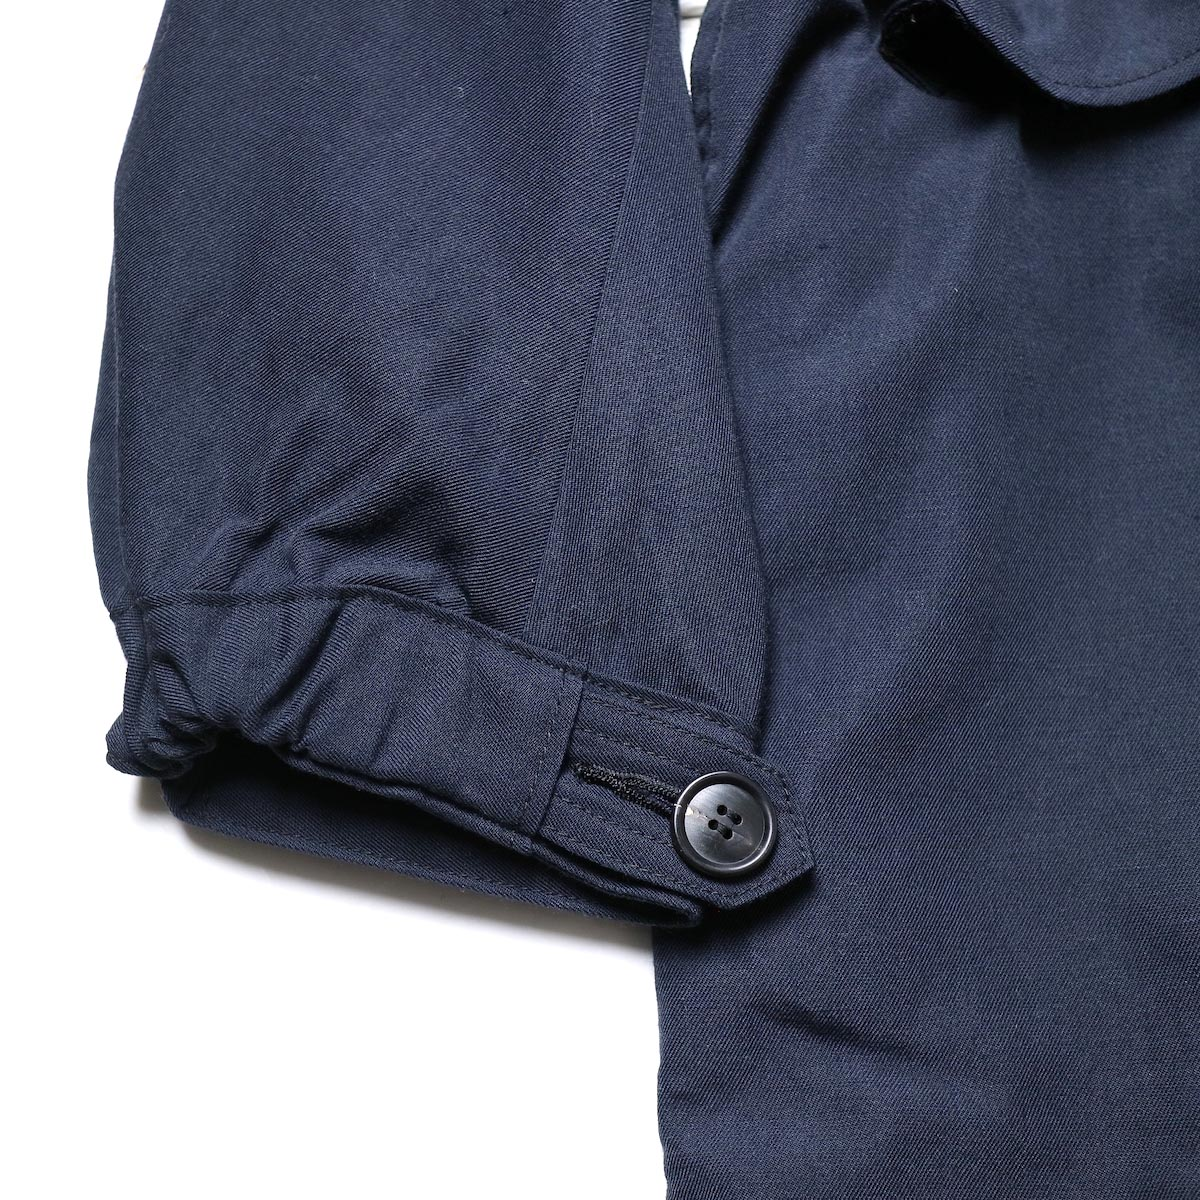 visvim / SIX-FIVE FISHTAIL PARKA (W/L) (Navy)袖